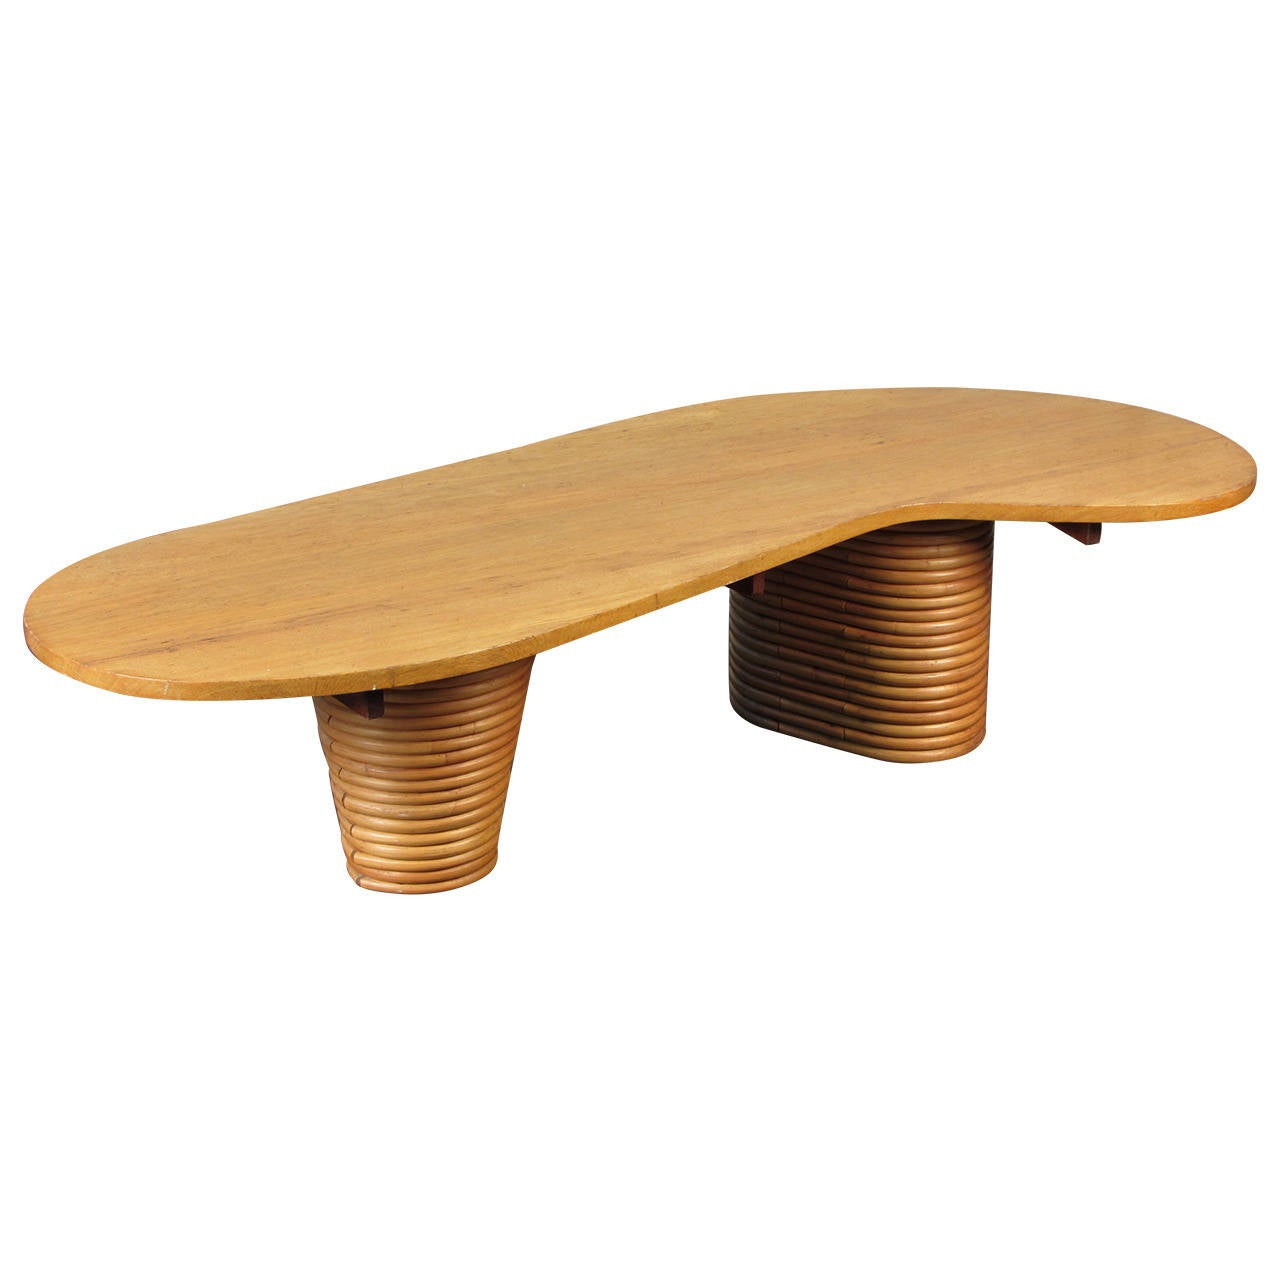 Wicker Coffee Table Base: Rare Biomorphic Coffee Table With Rattan Base In The Style